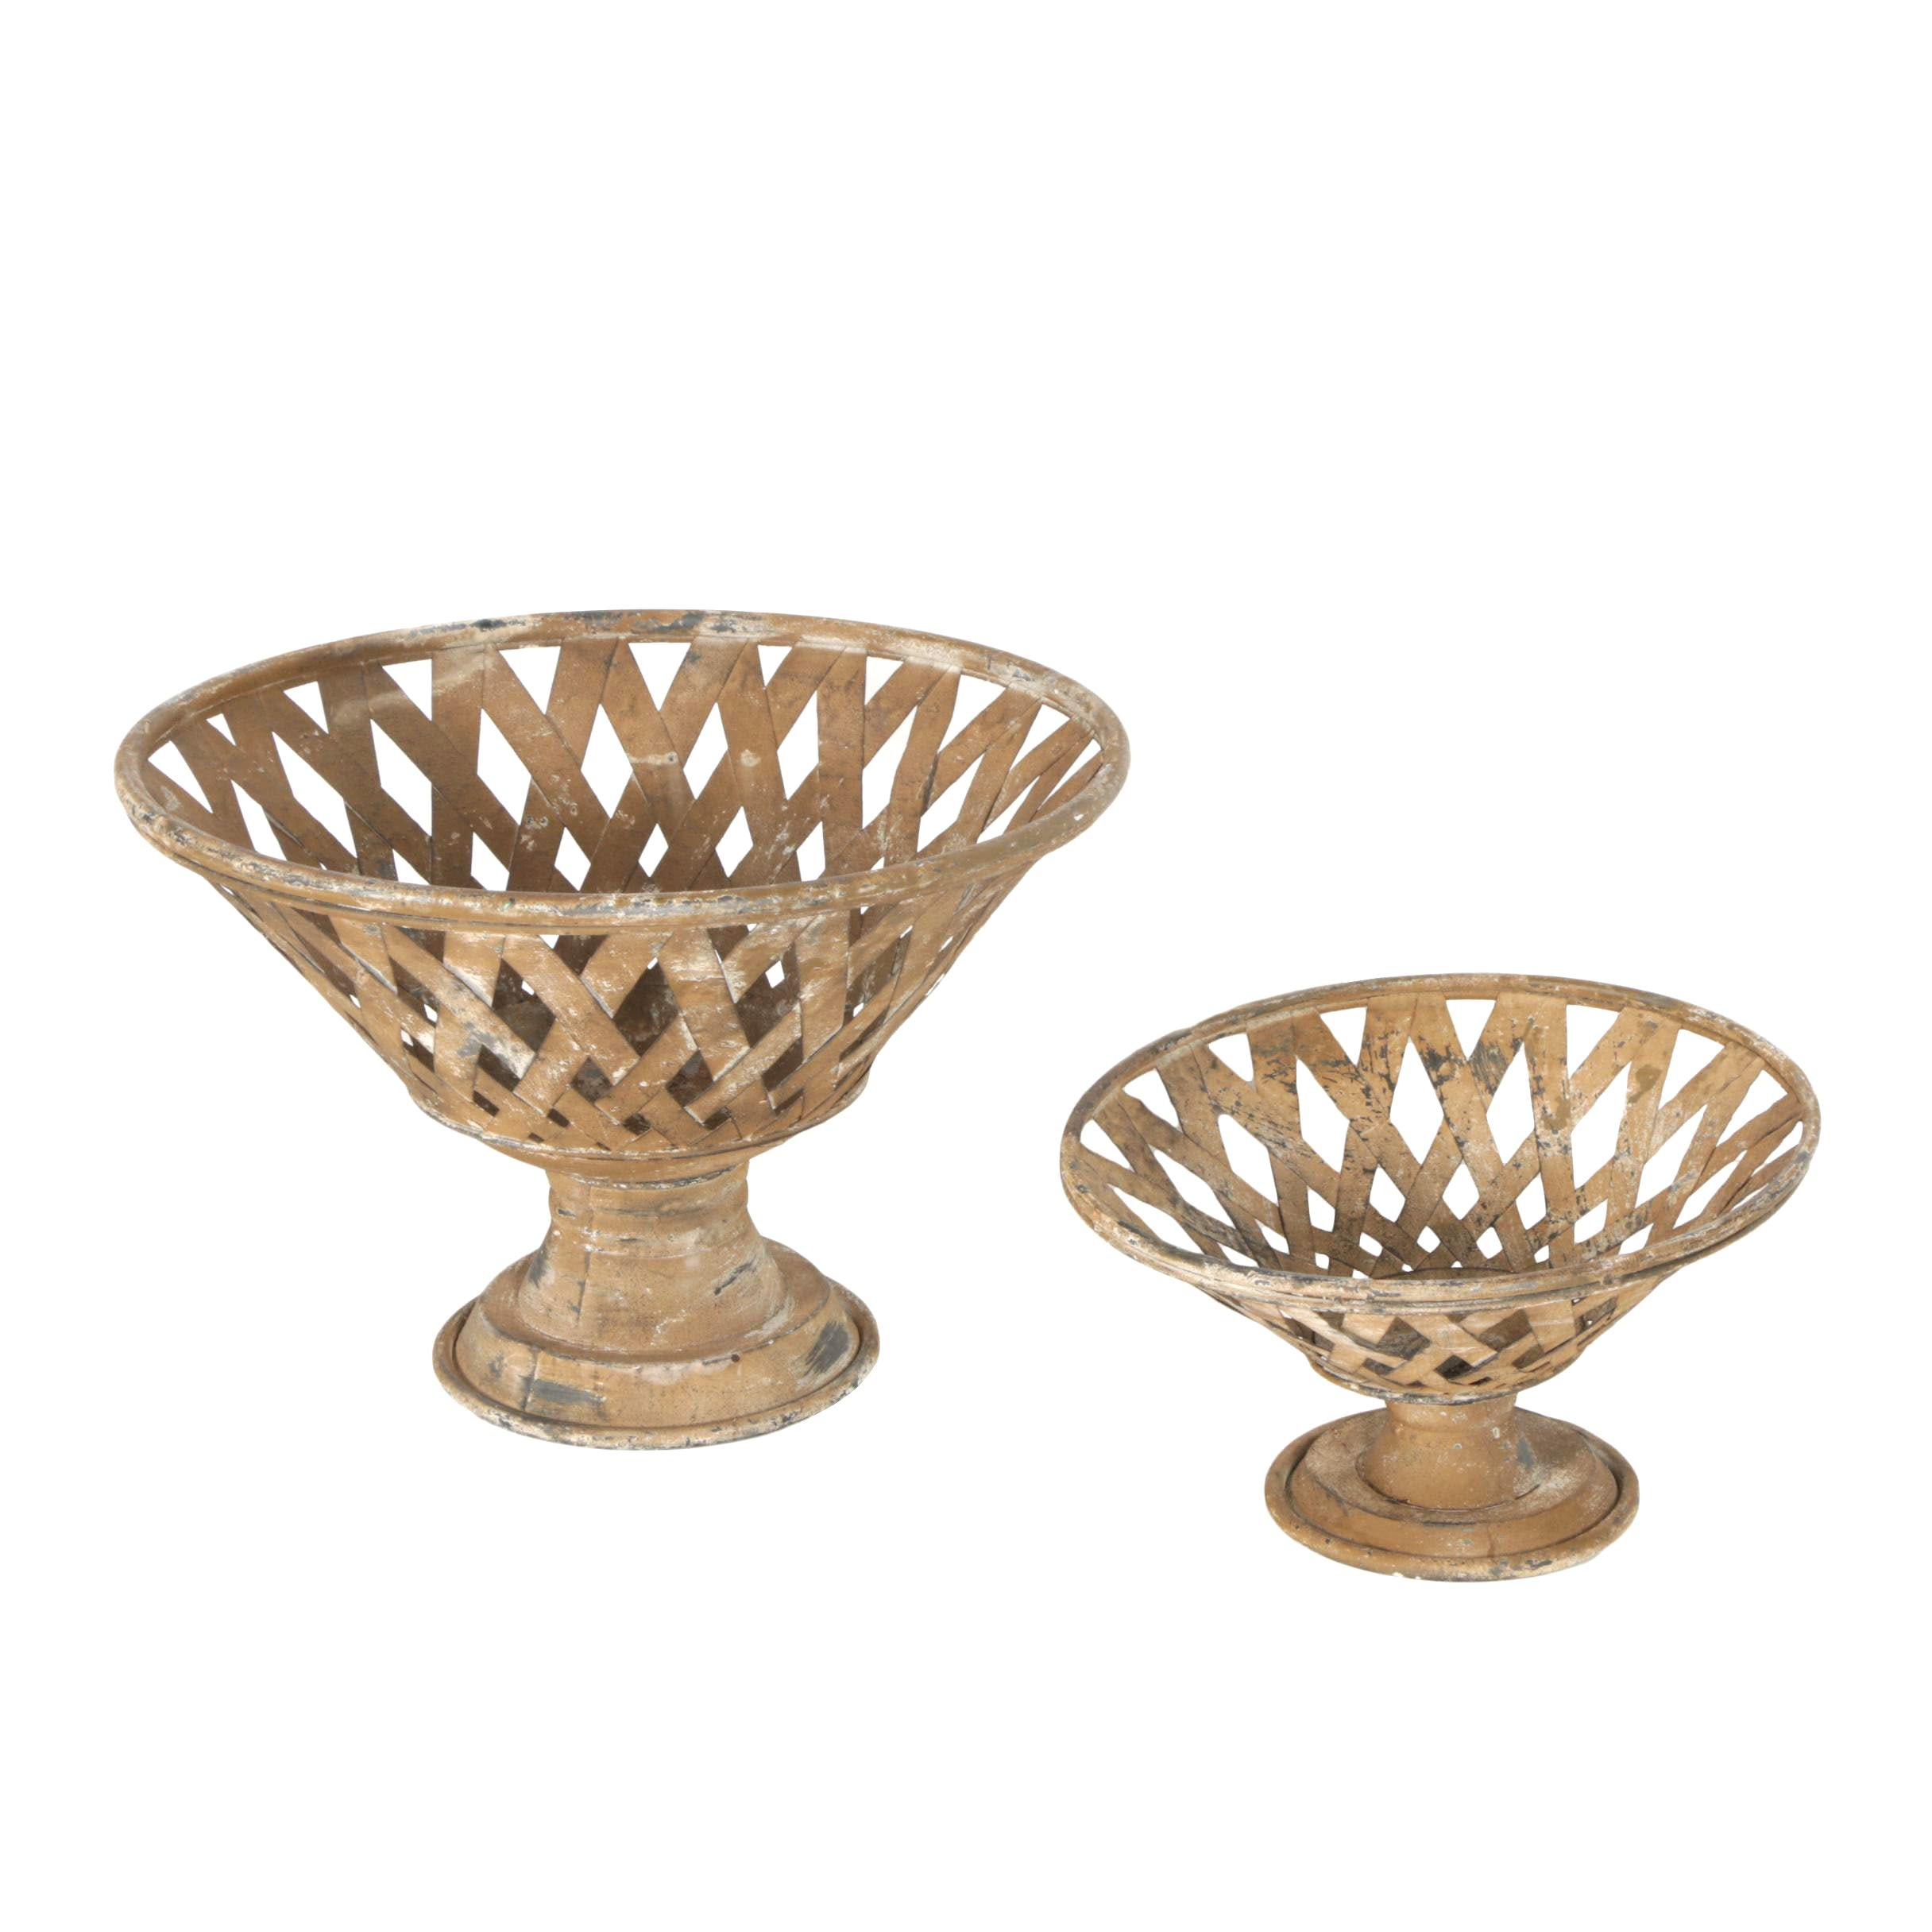 Round Metal Footed Baskets